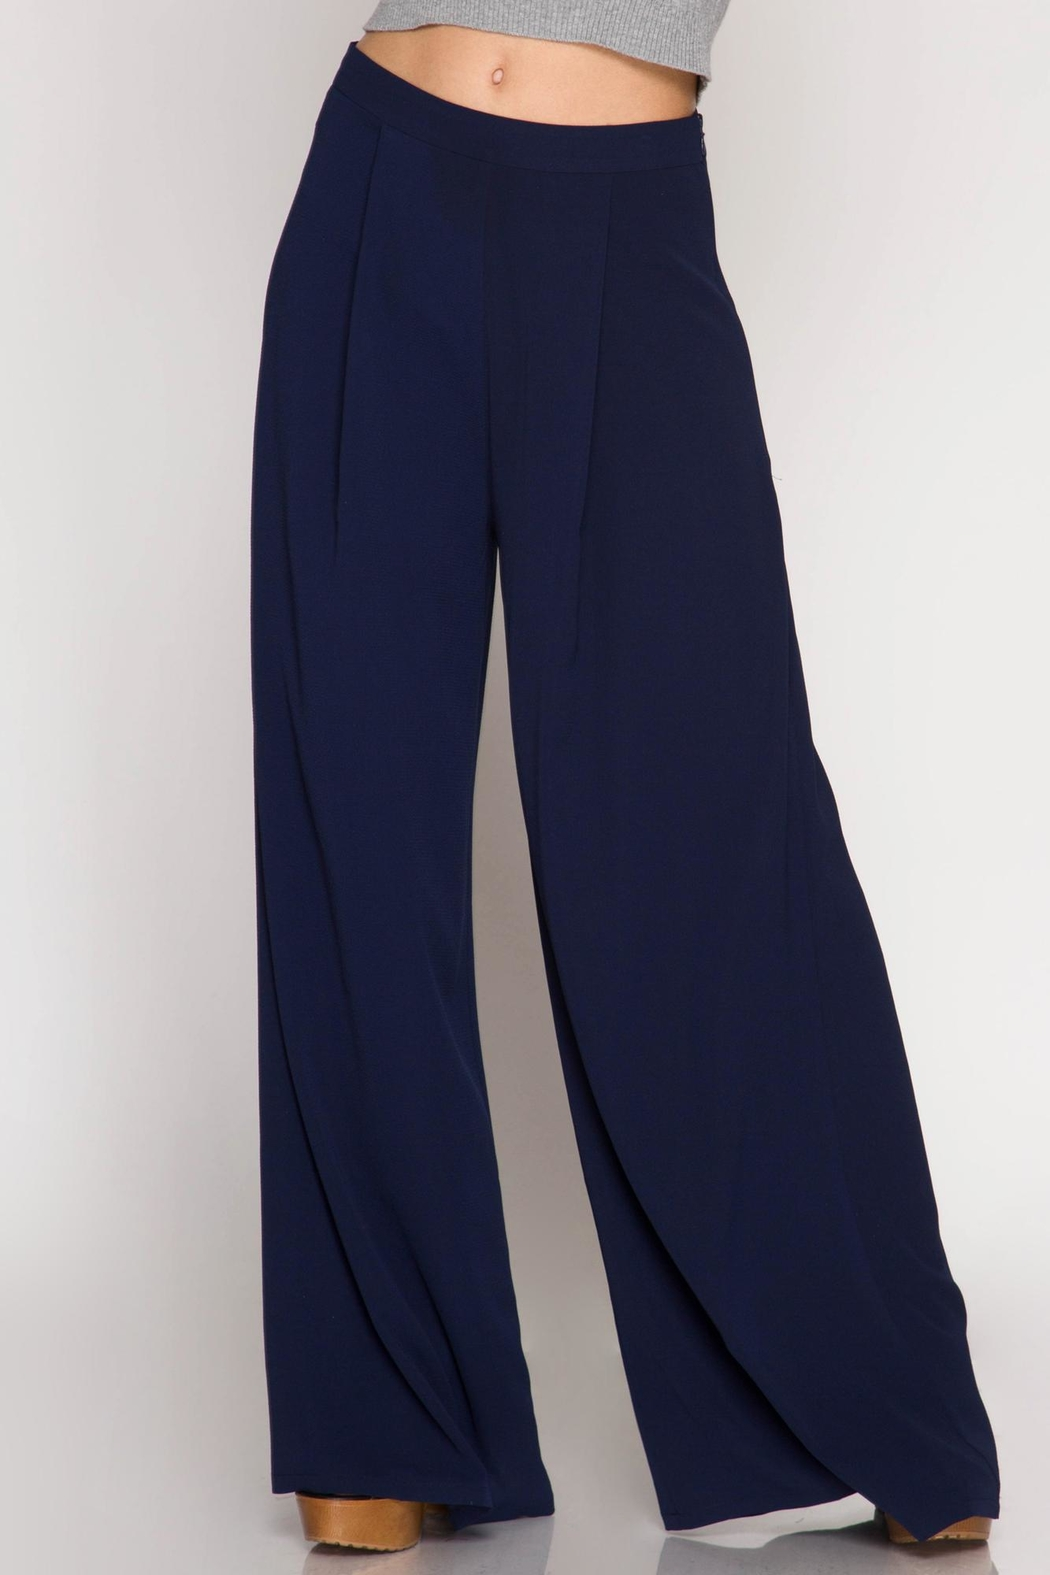 She + Sky Navy Palazzo Pants - Front Cropped Image